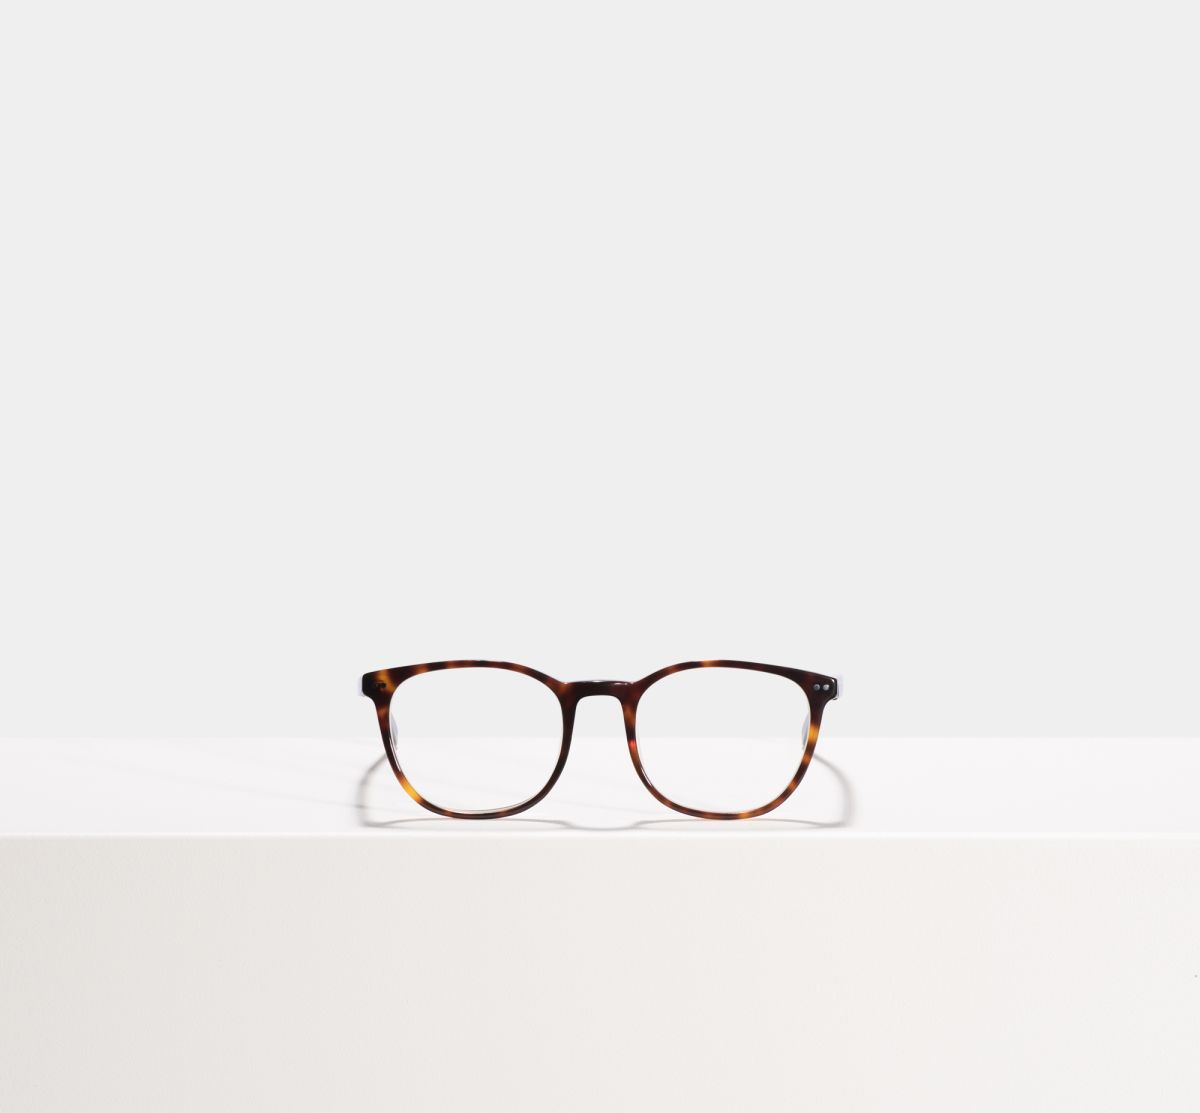 Saul rund Acetat glasses in Hazelnut Tortoise by Ace & Tate